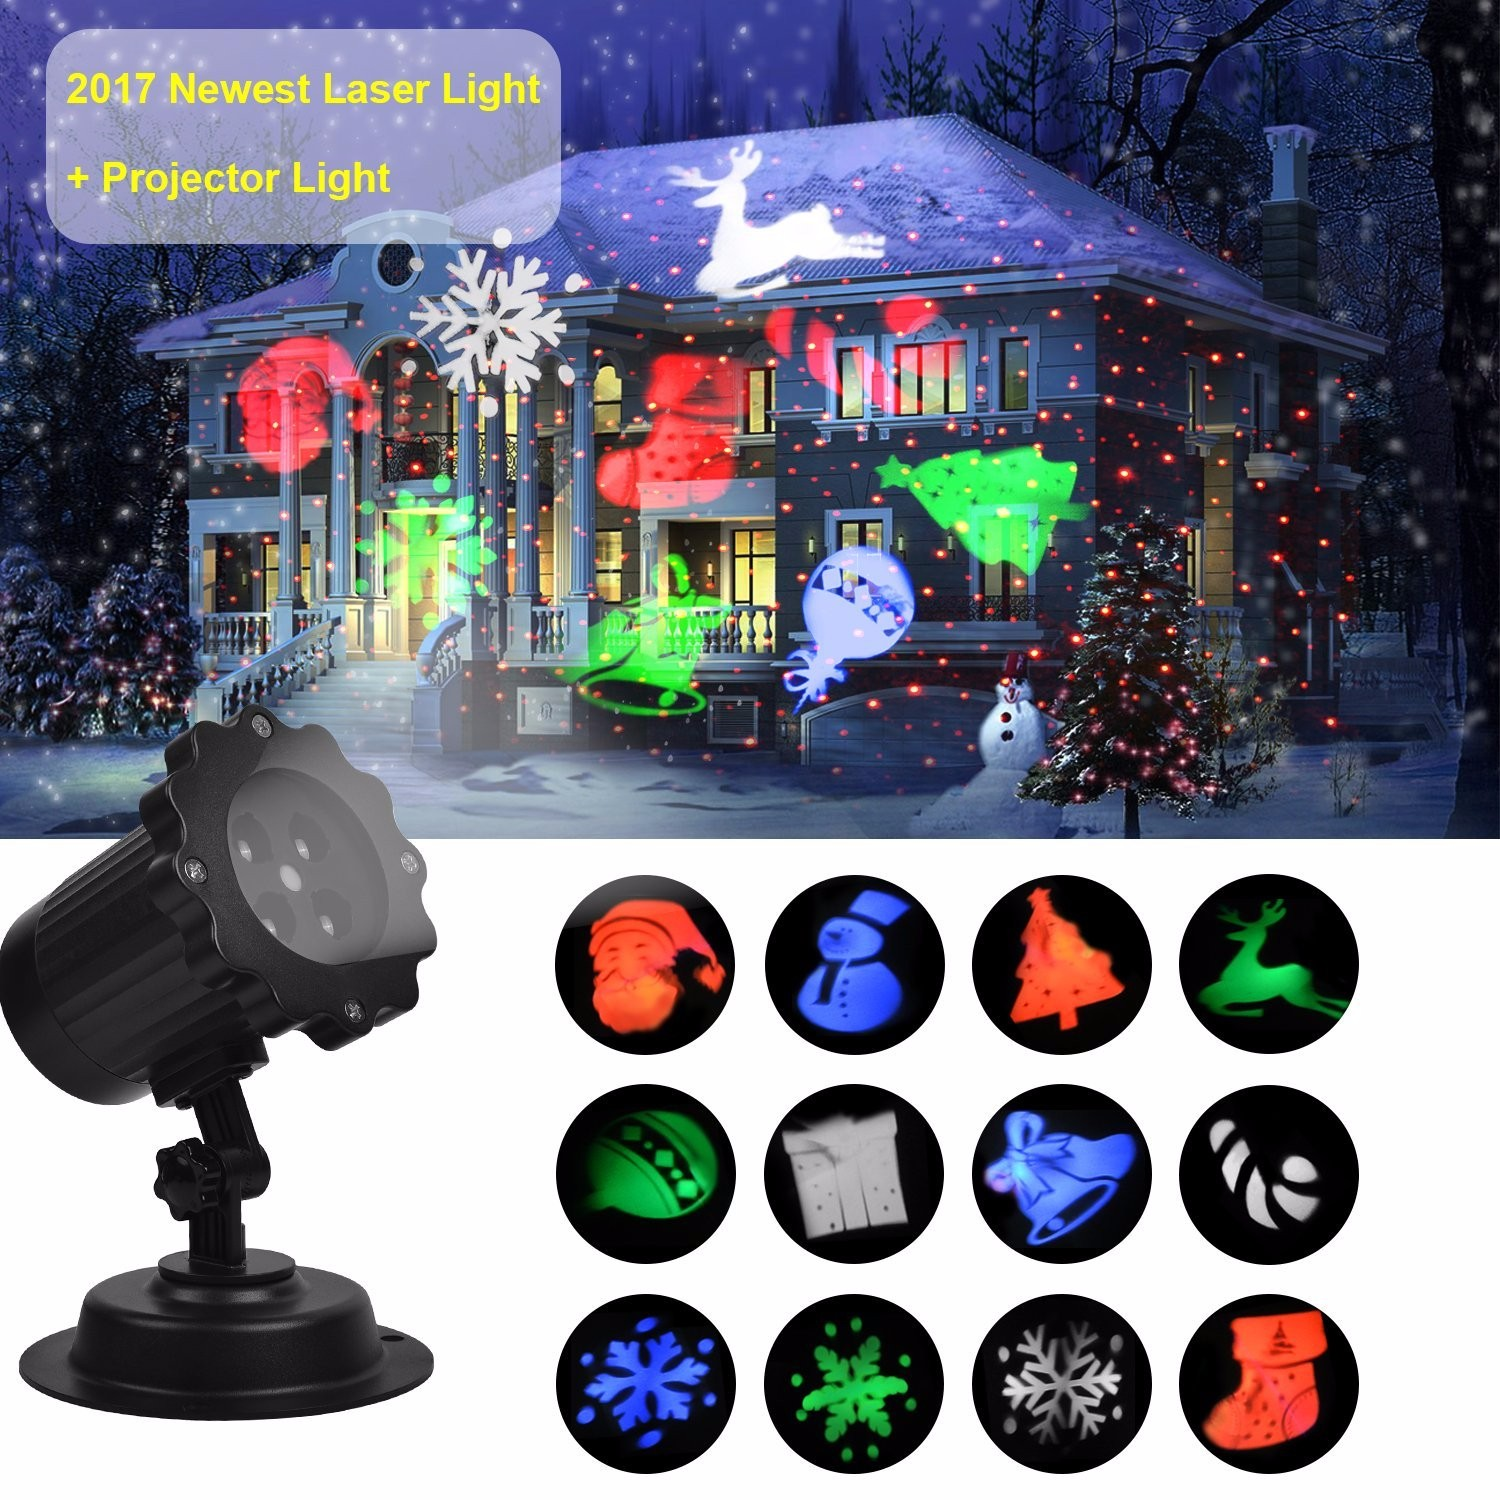 Christmas Laser Projector Light Bright Led Landscape Spotlight Indoor and Outdoor Waterproof Projection Led Lights for Christmas Decorations